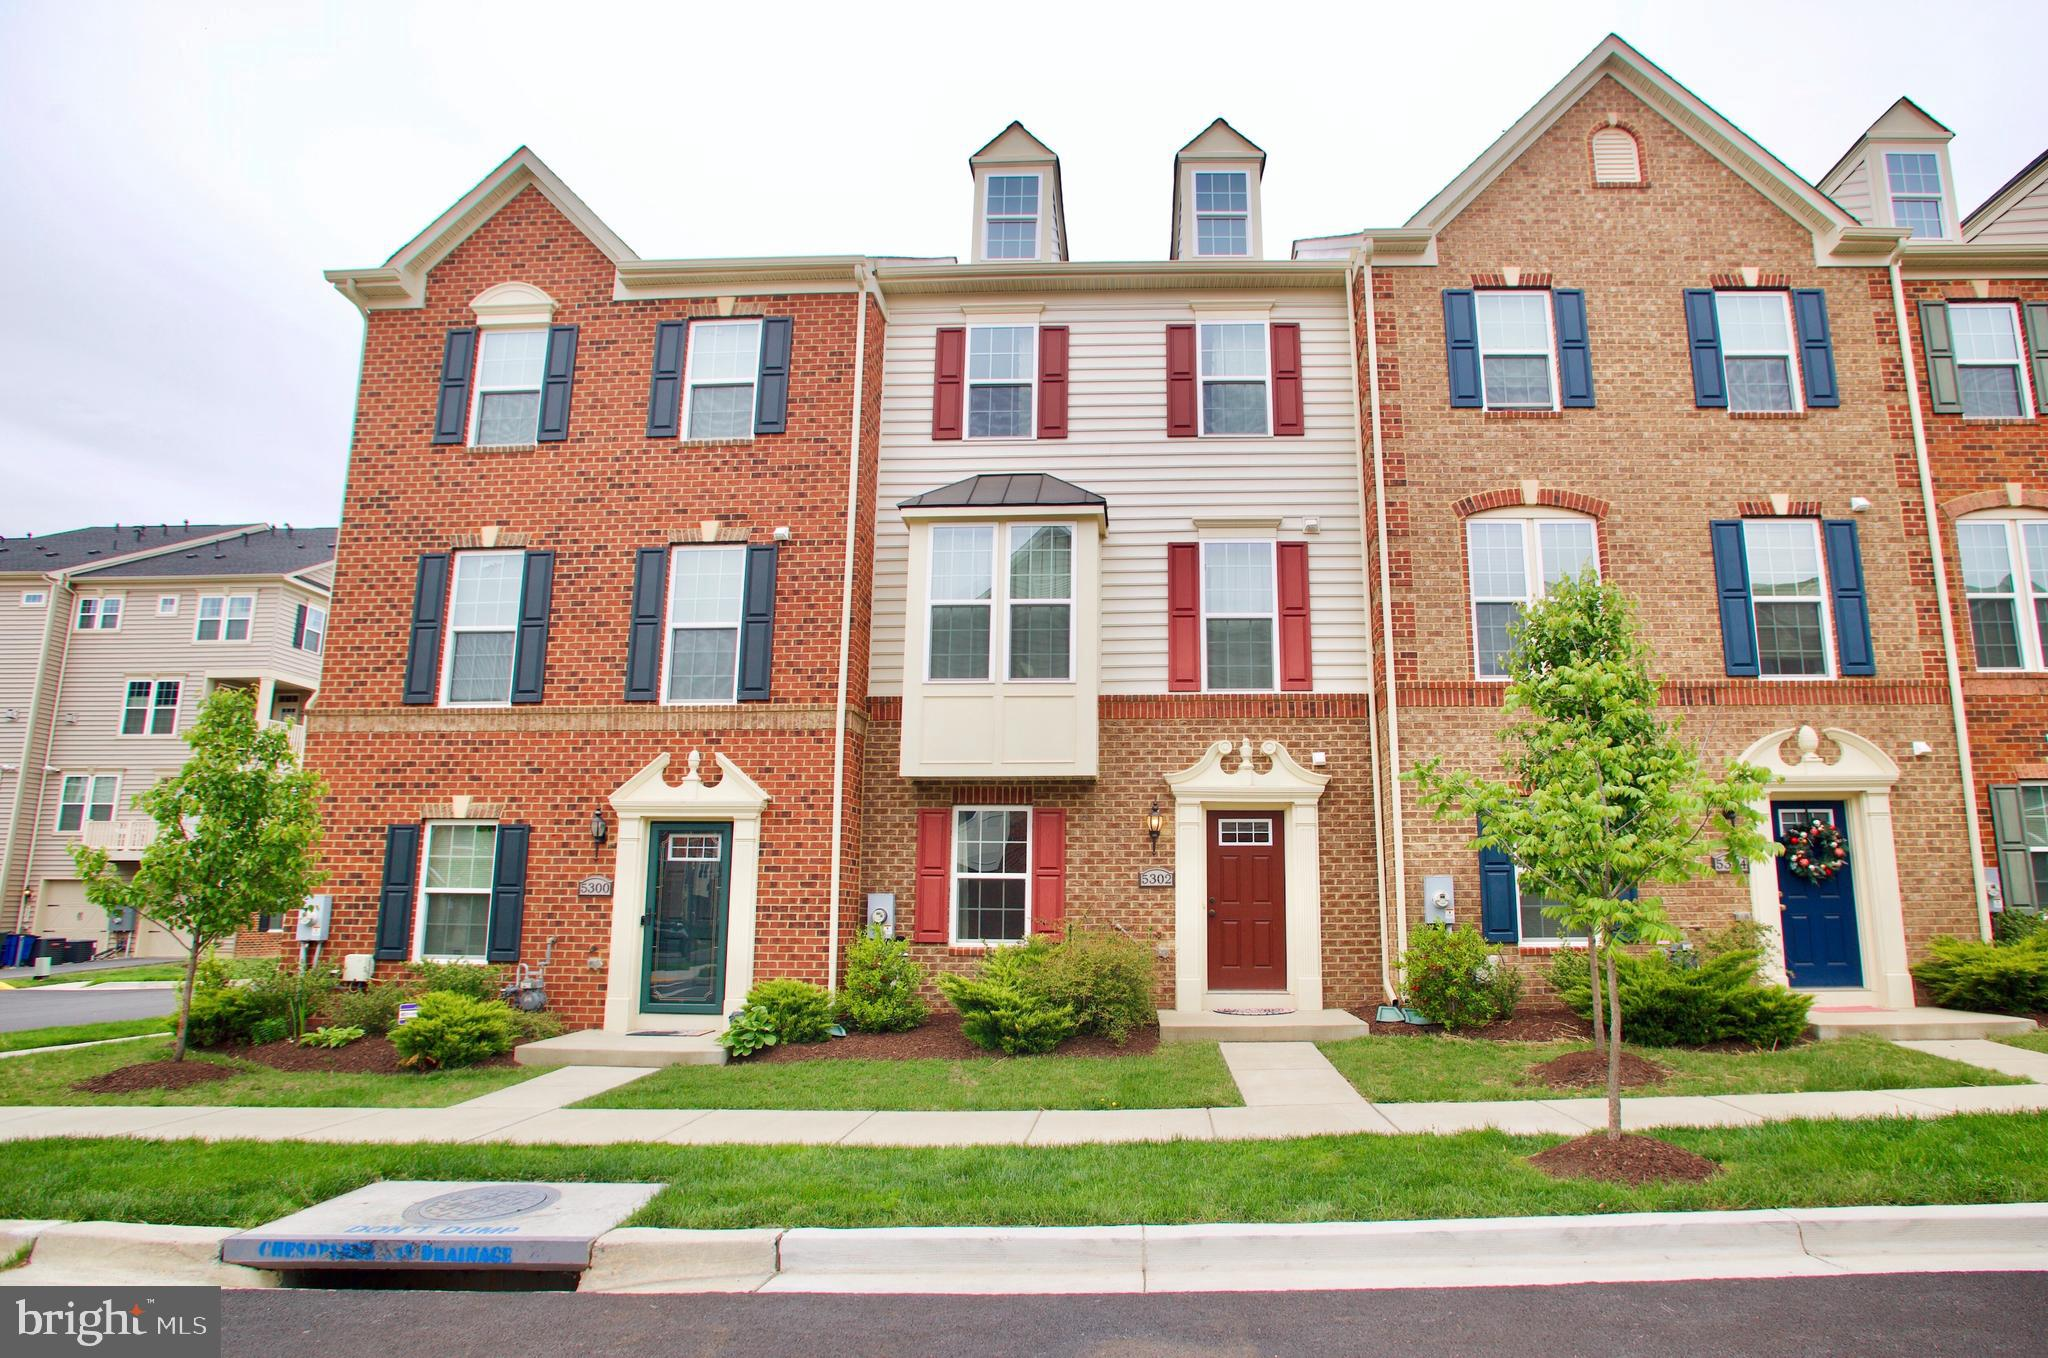 5302 DAVIS POINT LANE, GREENBELT, MD 20770